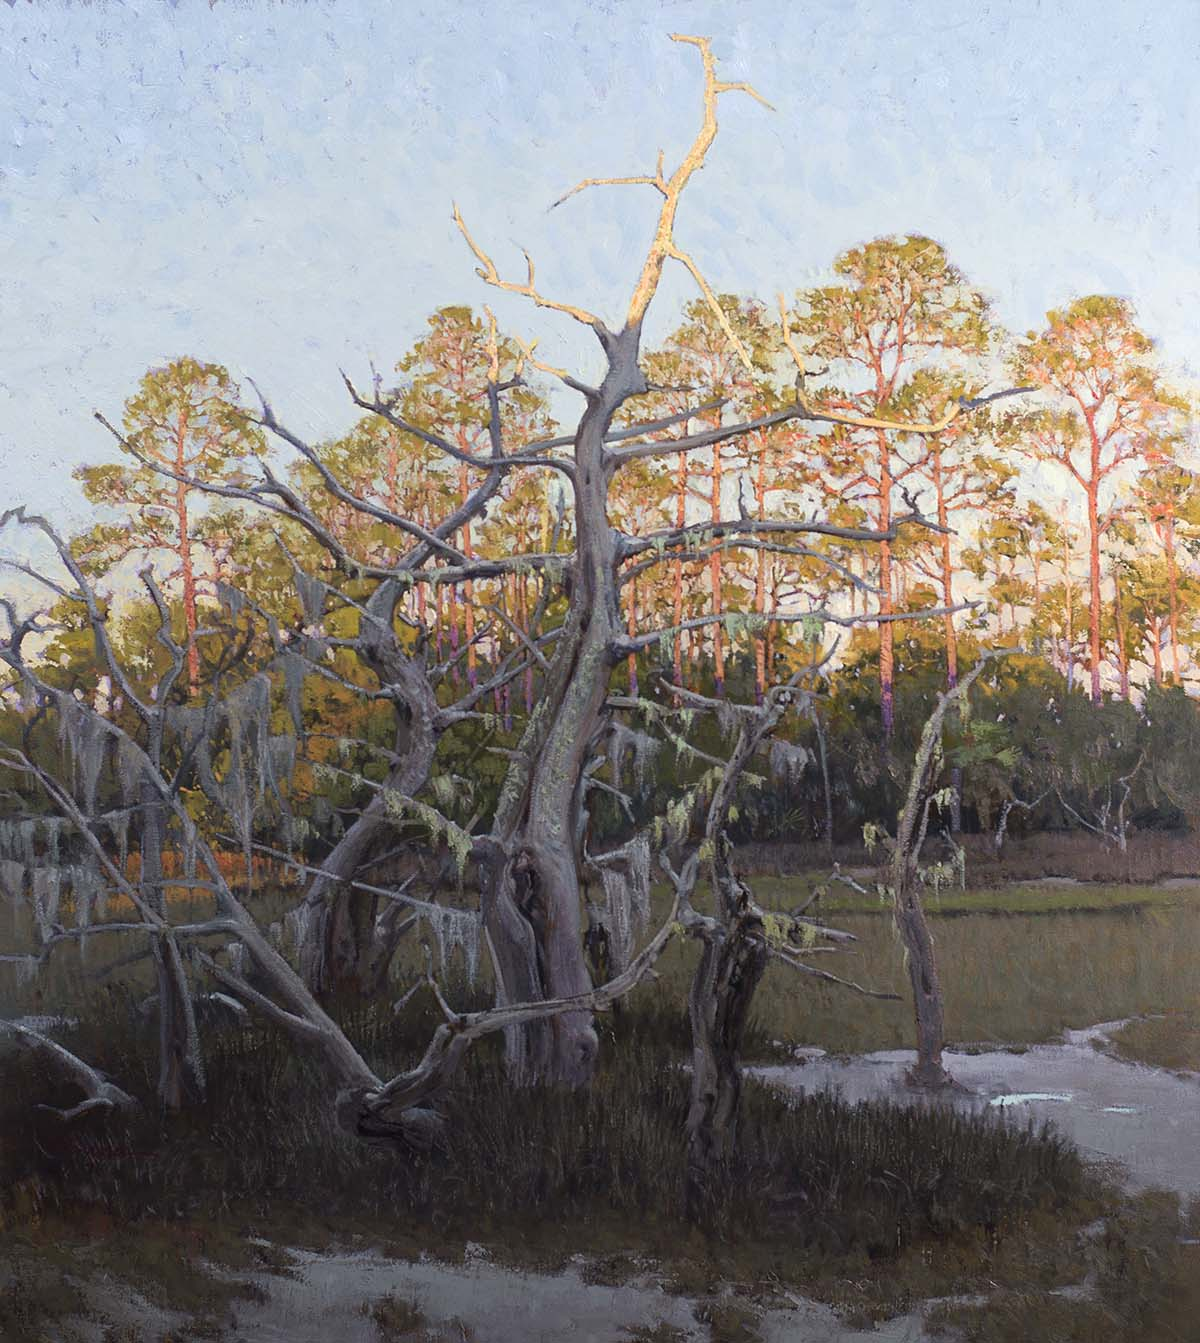 "36 x 40 oil on linen 2016,sgnd BL West Fraser '16; Palmetto Bluff, SC; Latitude- 32°13'14.03""N: Longitude- 80°53'44.38""W GPS:32.2205638889, -80.8956611111"